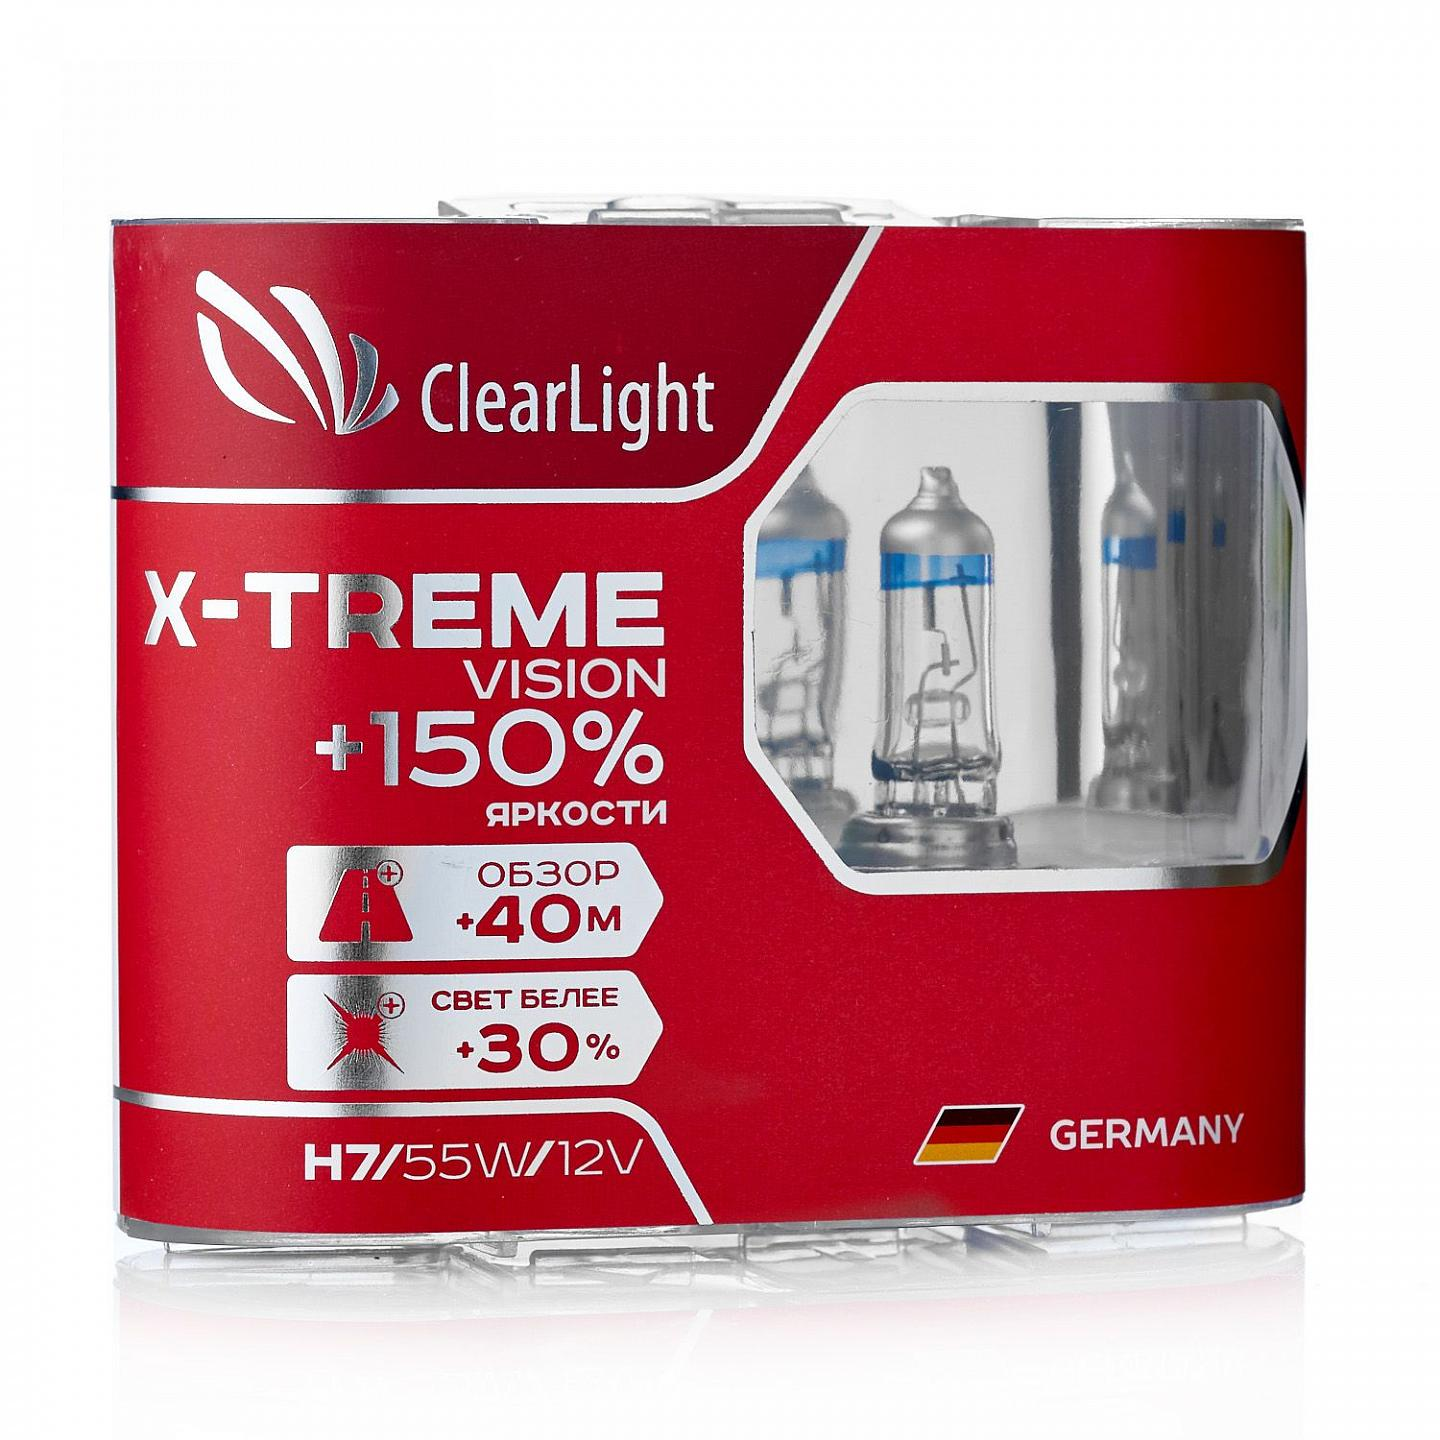 цена на Лампа HB3(Clearlight)12V-60W X-treme Vision +150% Light (компл., 2 шт.)